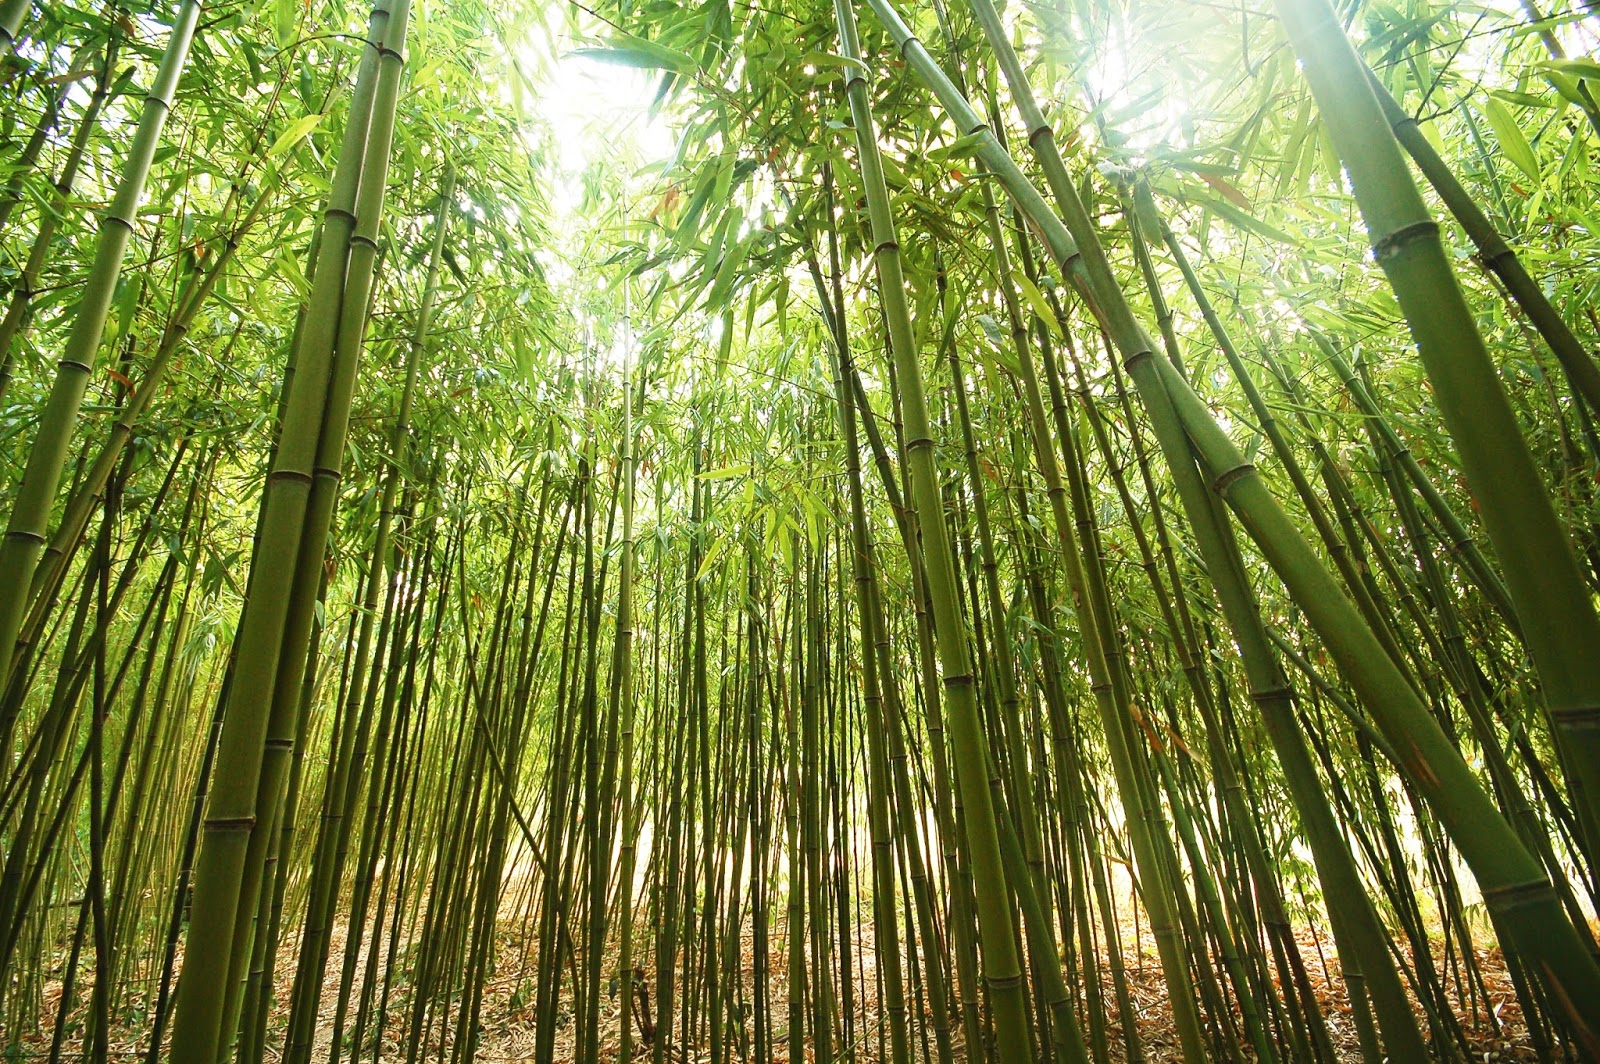 Self Watering Power Of Persistence The Chinese Bamboo Tree James